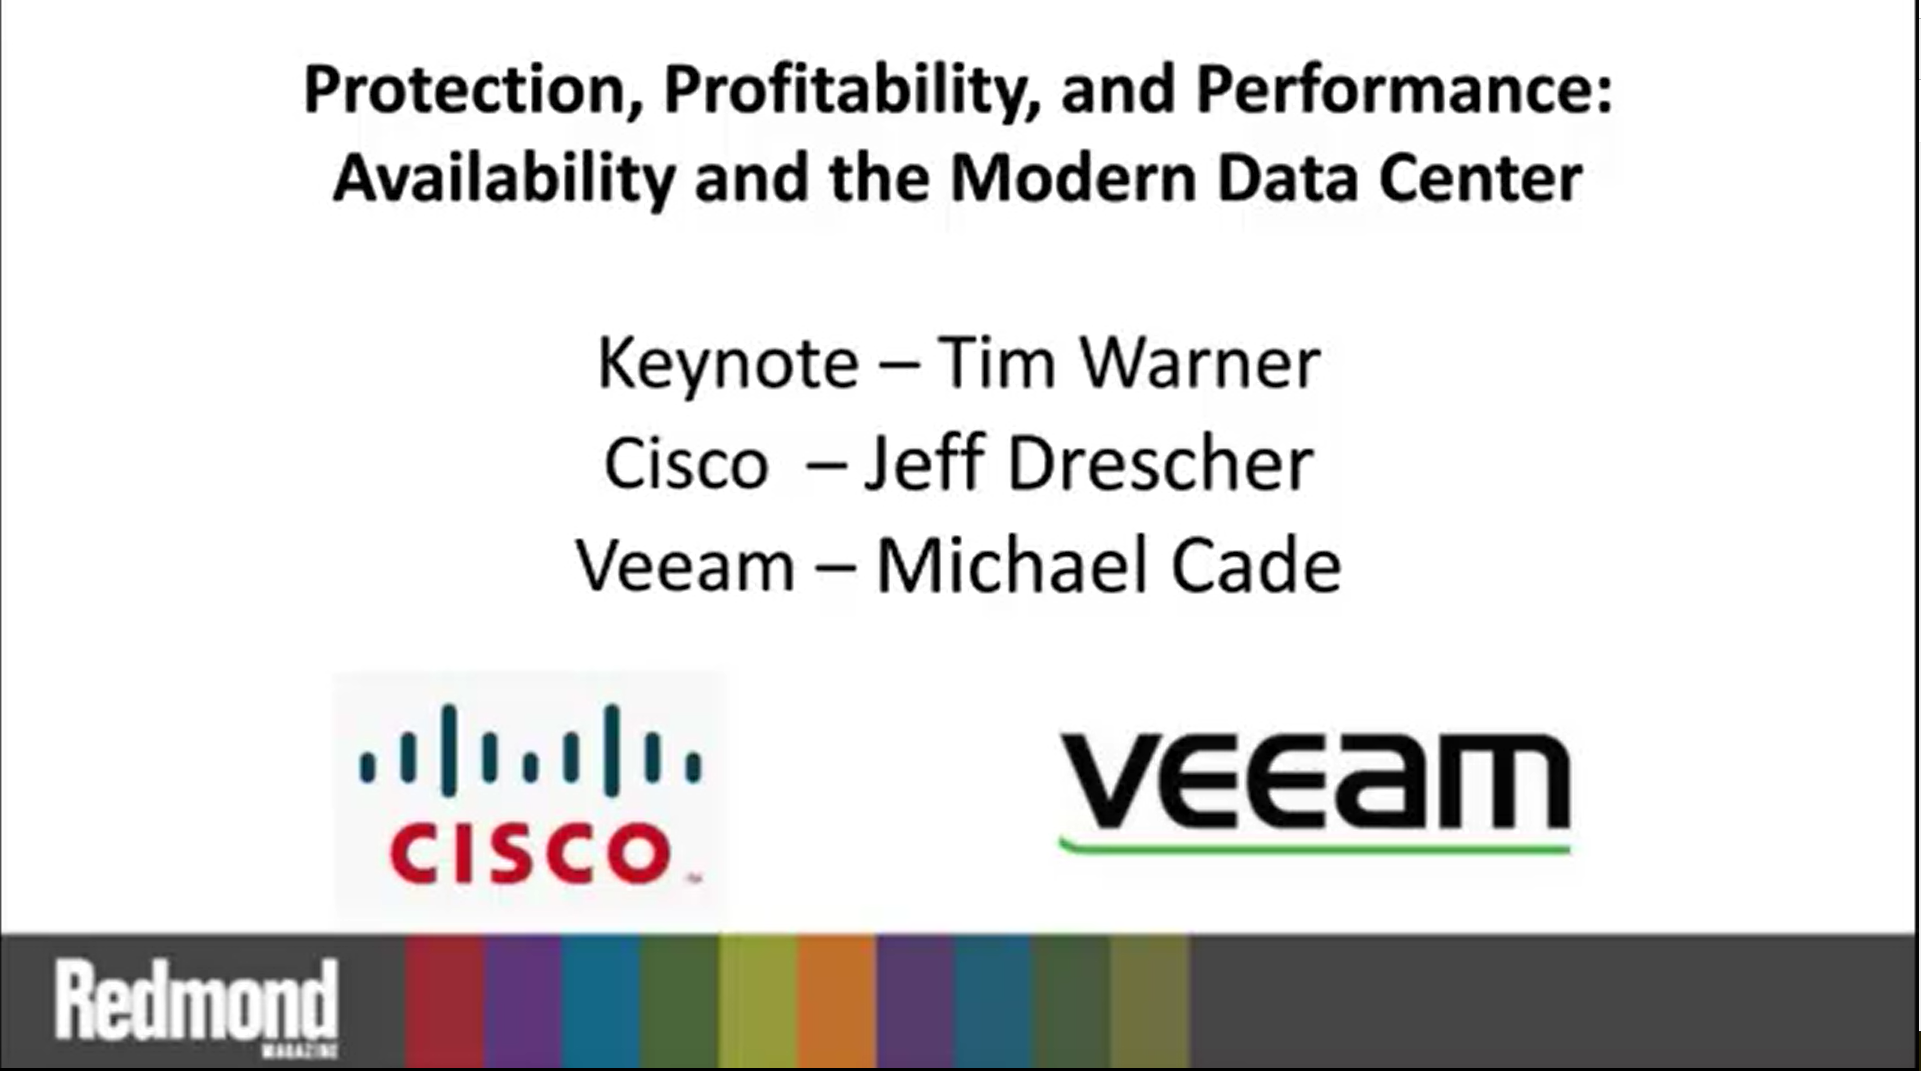 Protection, Profitability, and Performance: Availability and the Modern Data Center